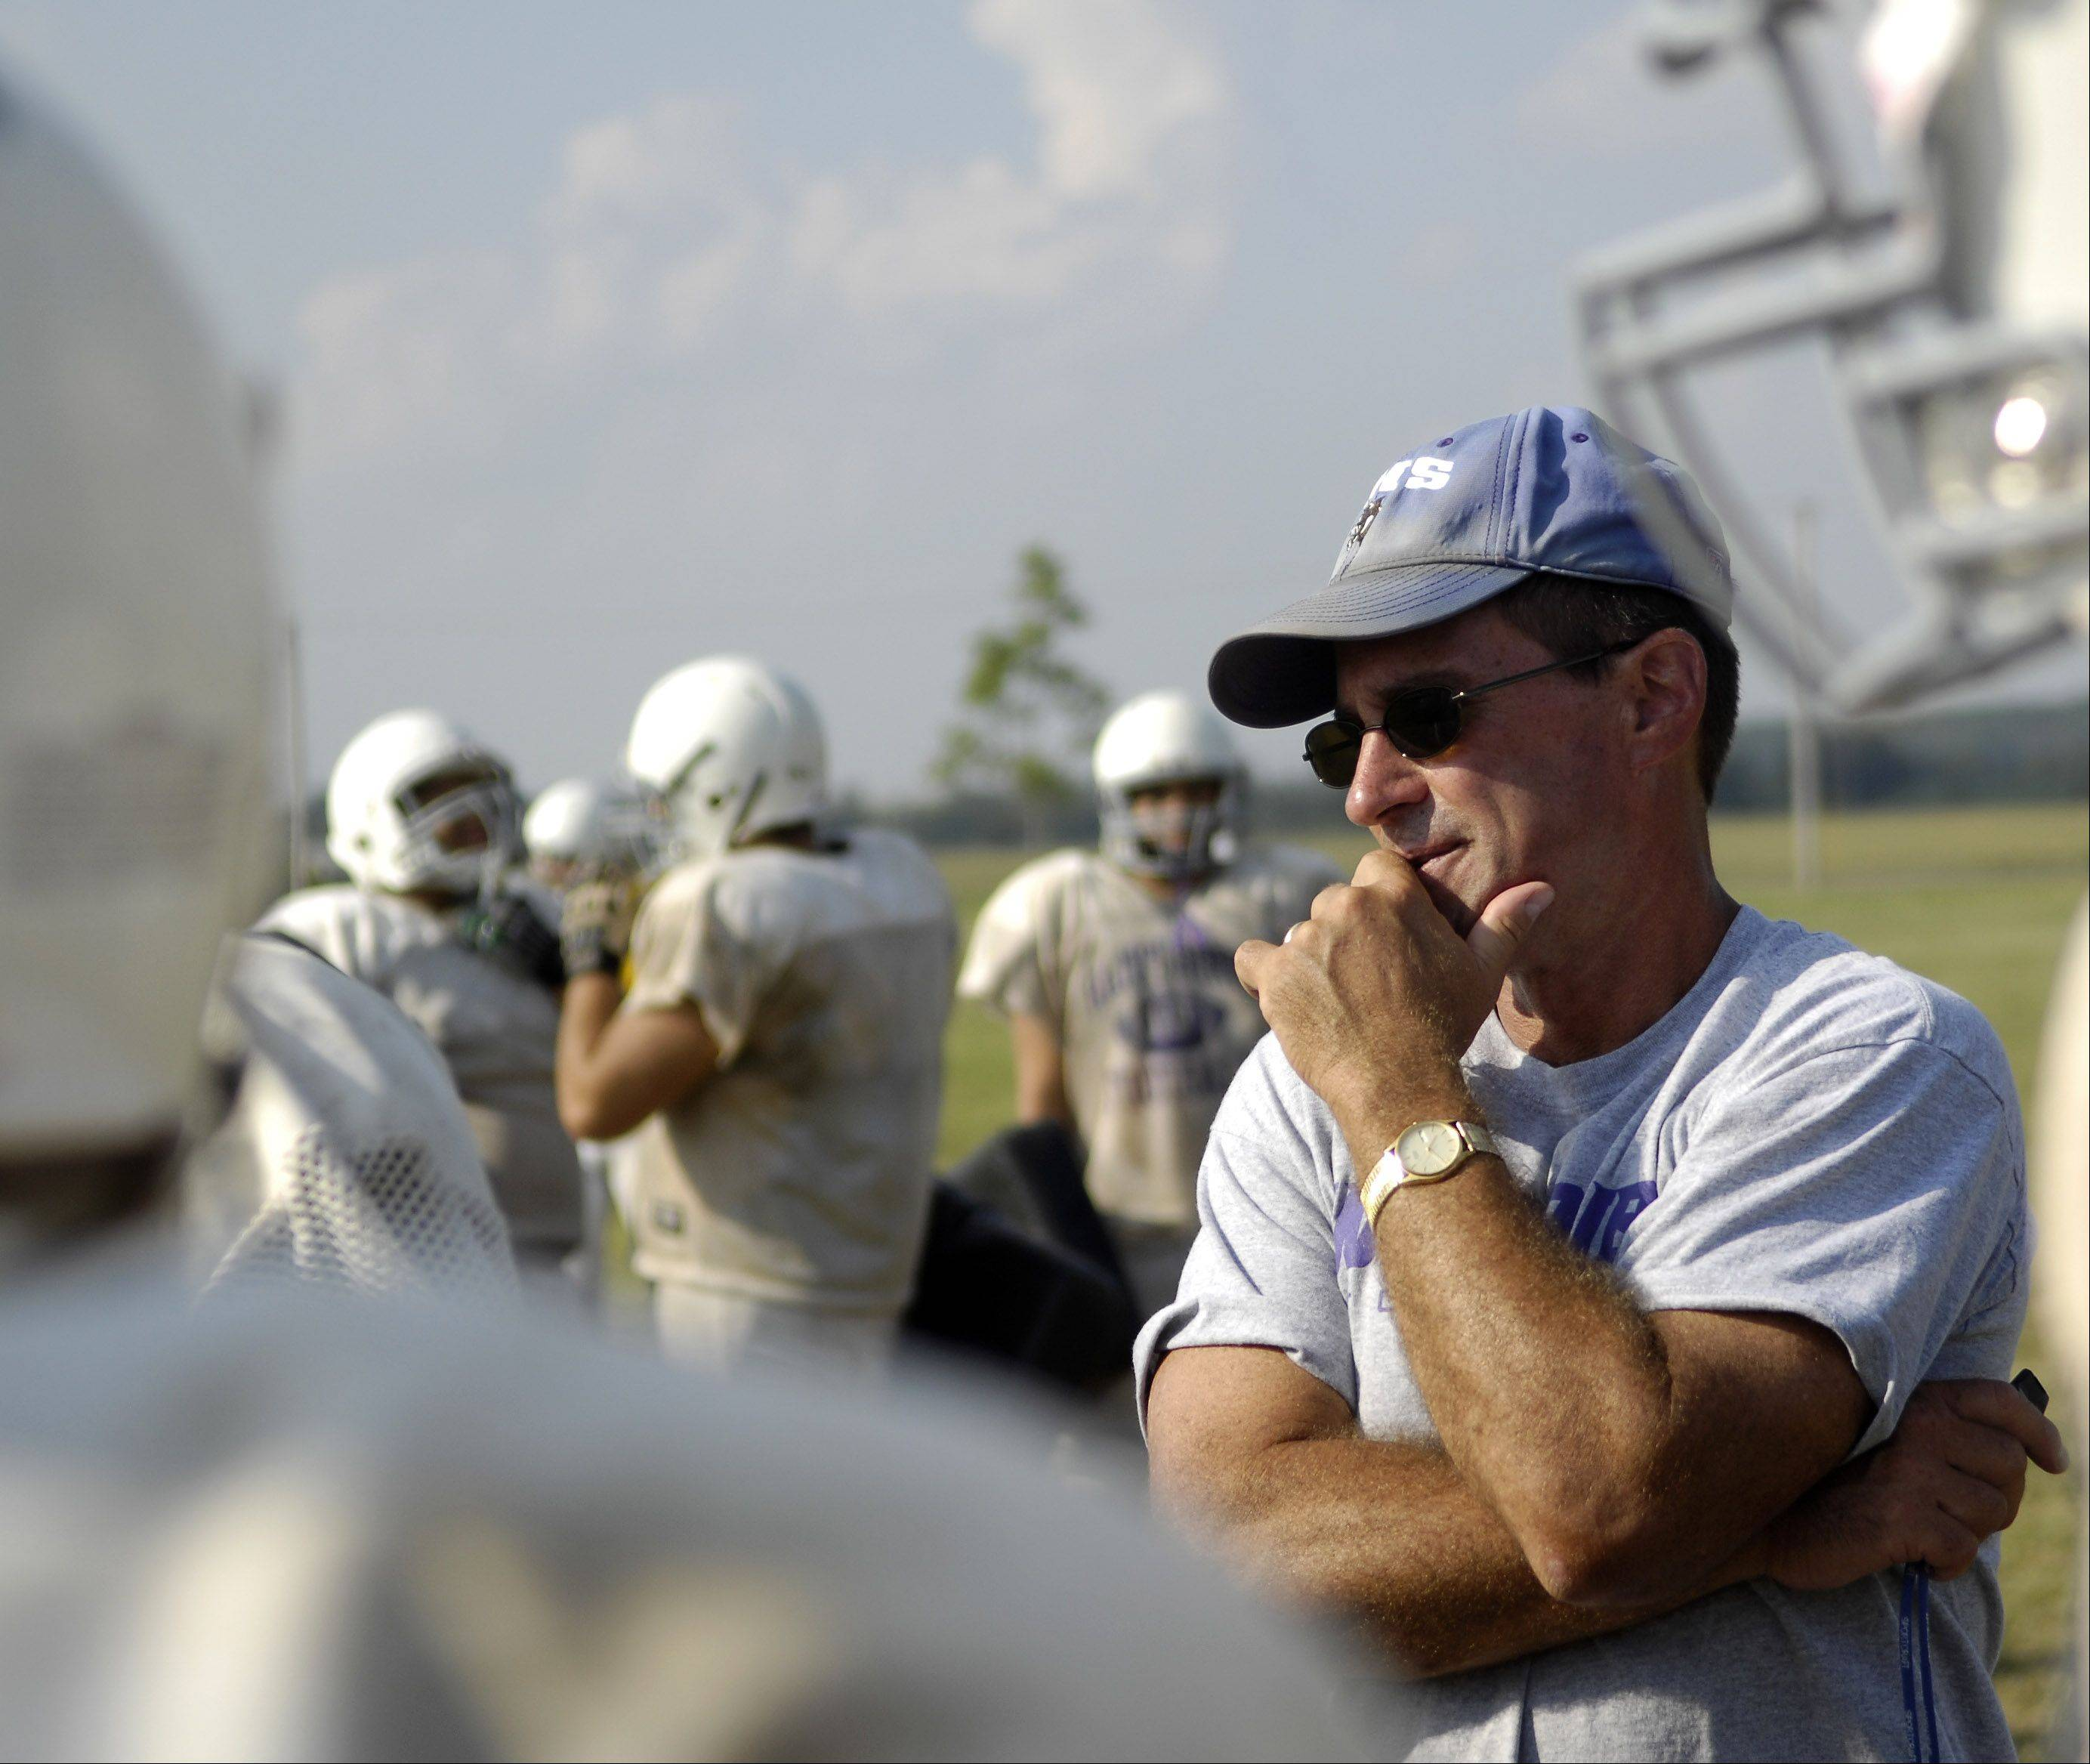 Hampshire football coach Dan Cavanaugh will retire at the end of the season after 25 years leading the Whip-Purs. Cavanaugh, who won a state title at Hampshire in 1995, has the Whips back in the playoffs, where they will face Kaneland on Friday night in a Class 5A opener.